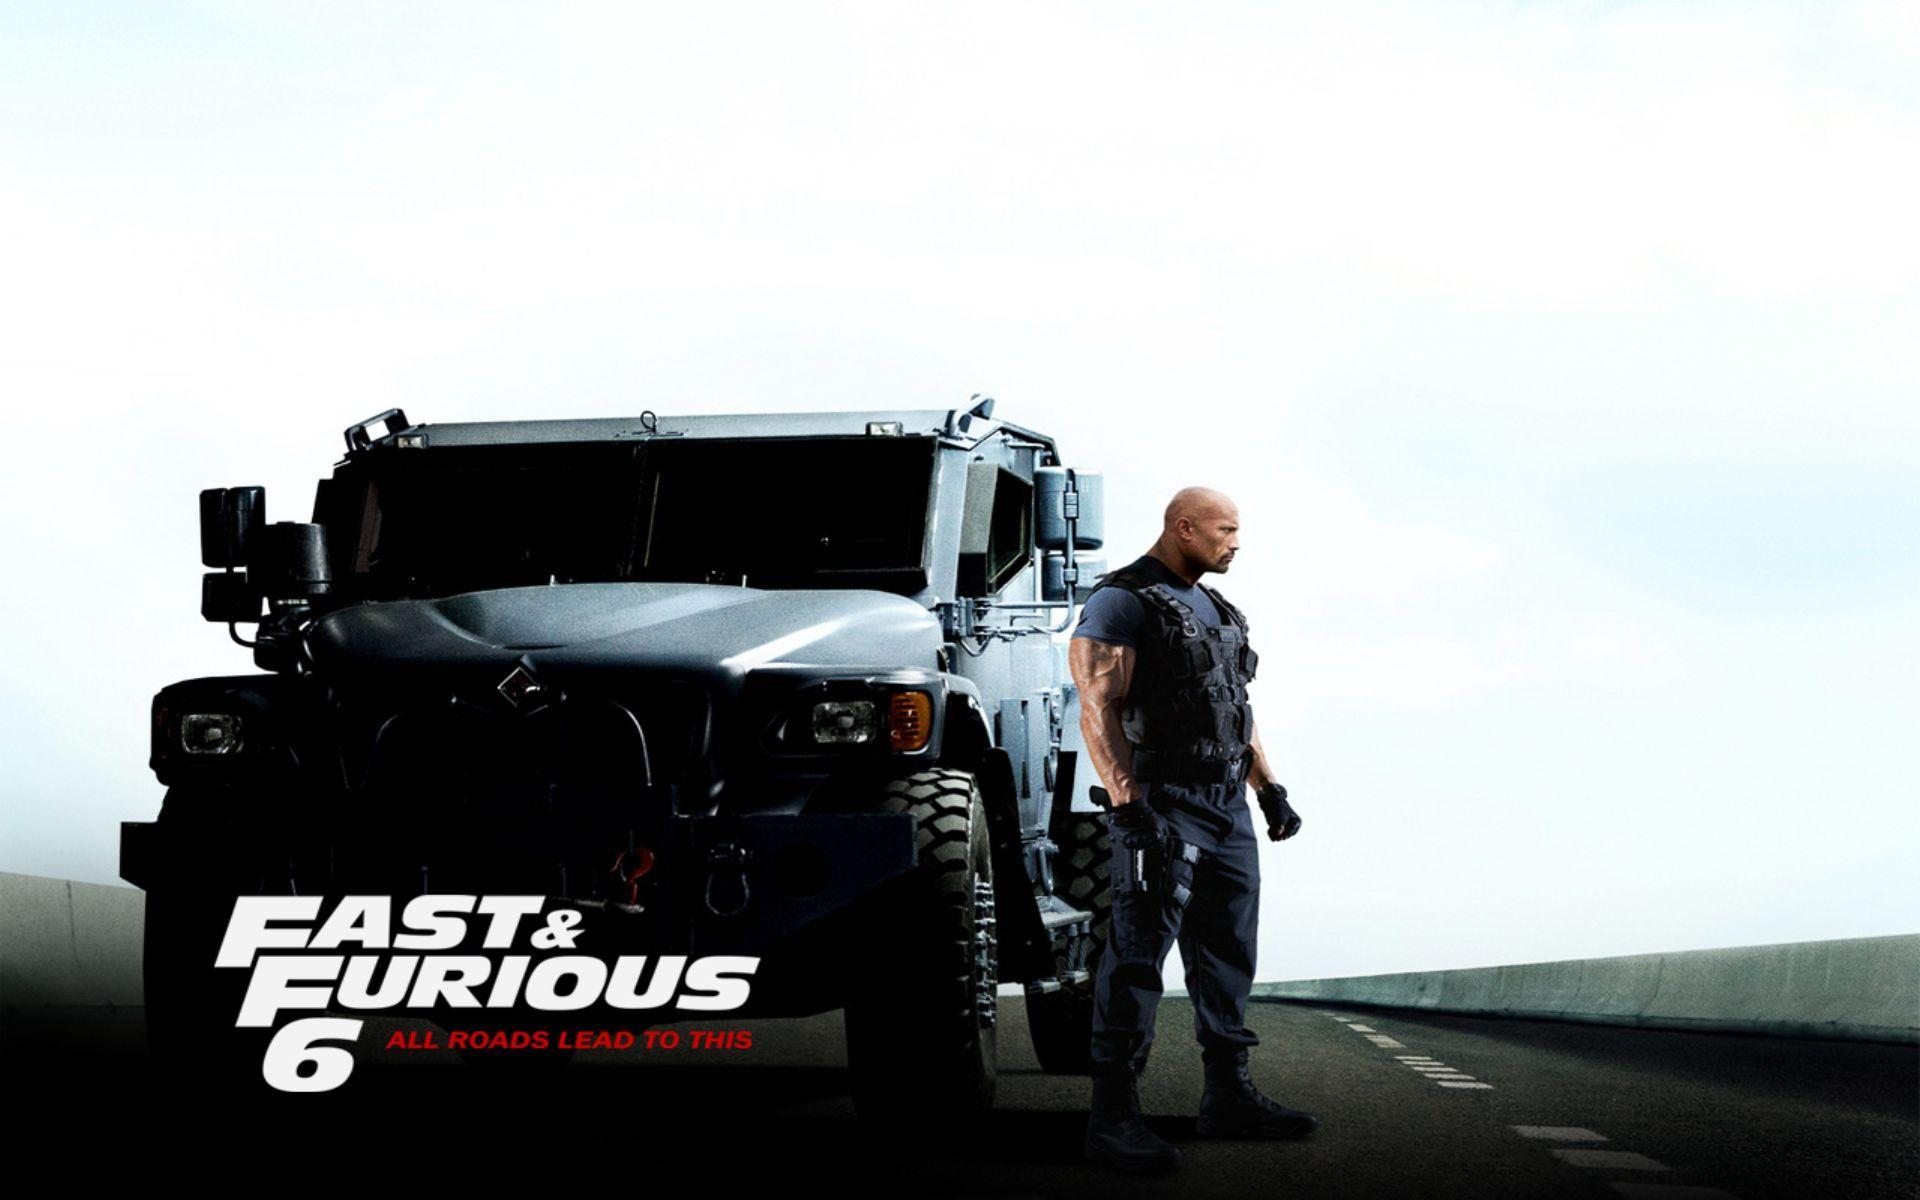 Download free fast and furious wallpapers for your mobile phone